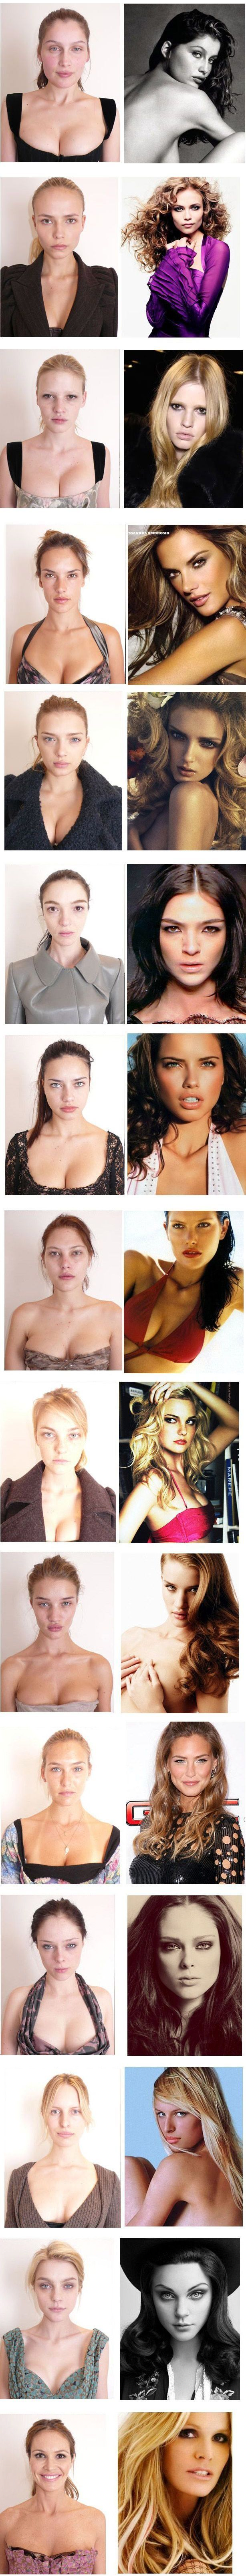 Victoria's secret models without make up: Girls, Make Up, Feelings Better, Natural Beautiful, Victorias Secret Models, Makeup Artists, Hair, Victoria Secret Models, Supermodels